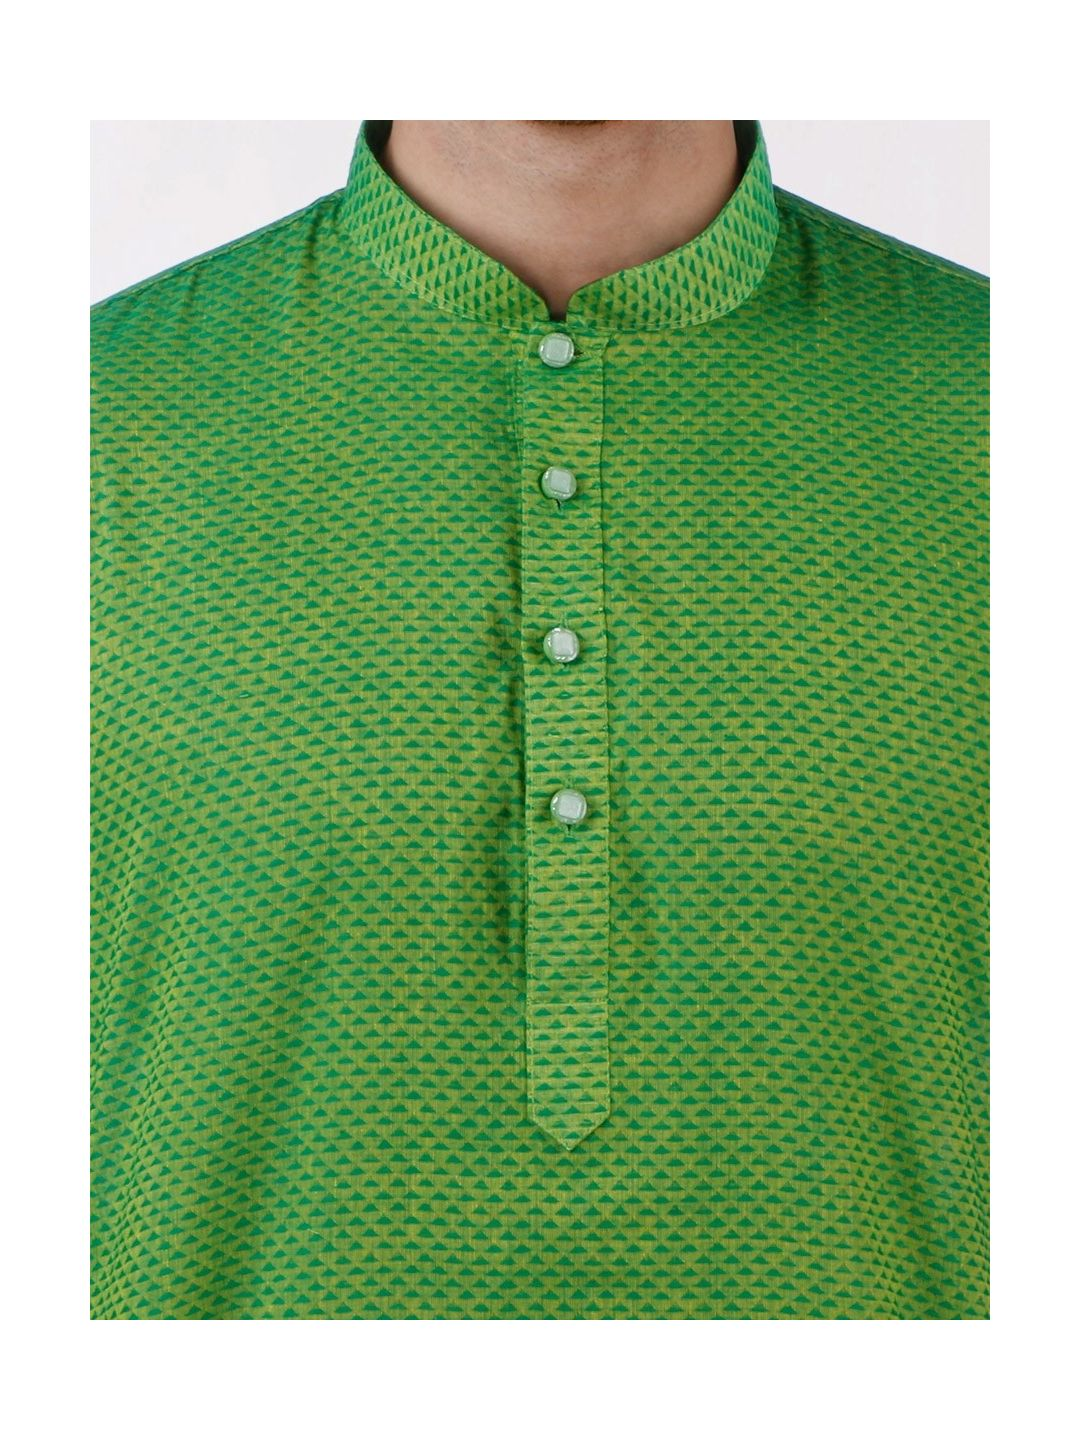 Green Woven Geometric Design Handloom Cotton Kurta